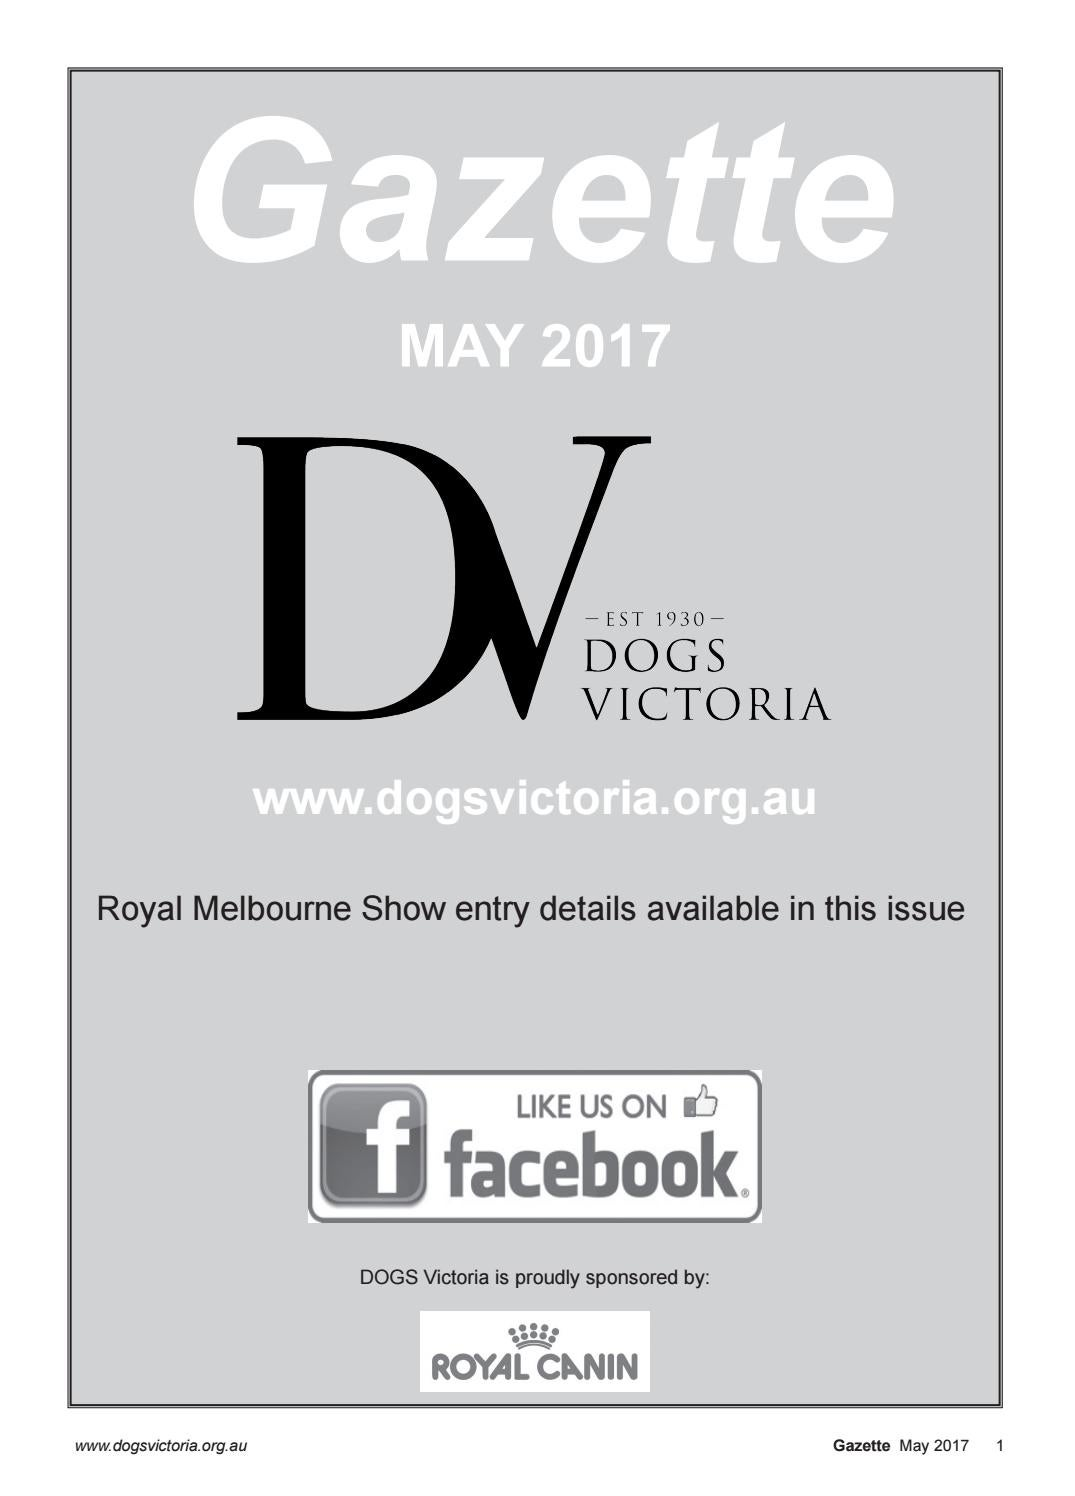 Dogs Victoria Gazette - May 2017 by Dogs Victoria - issuu